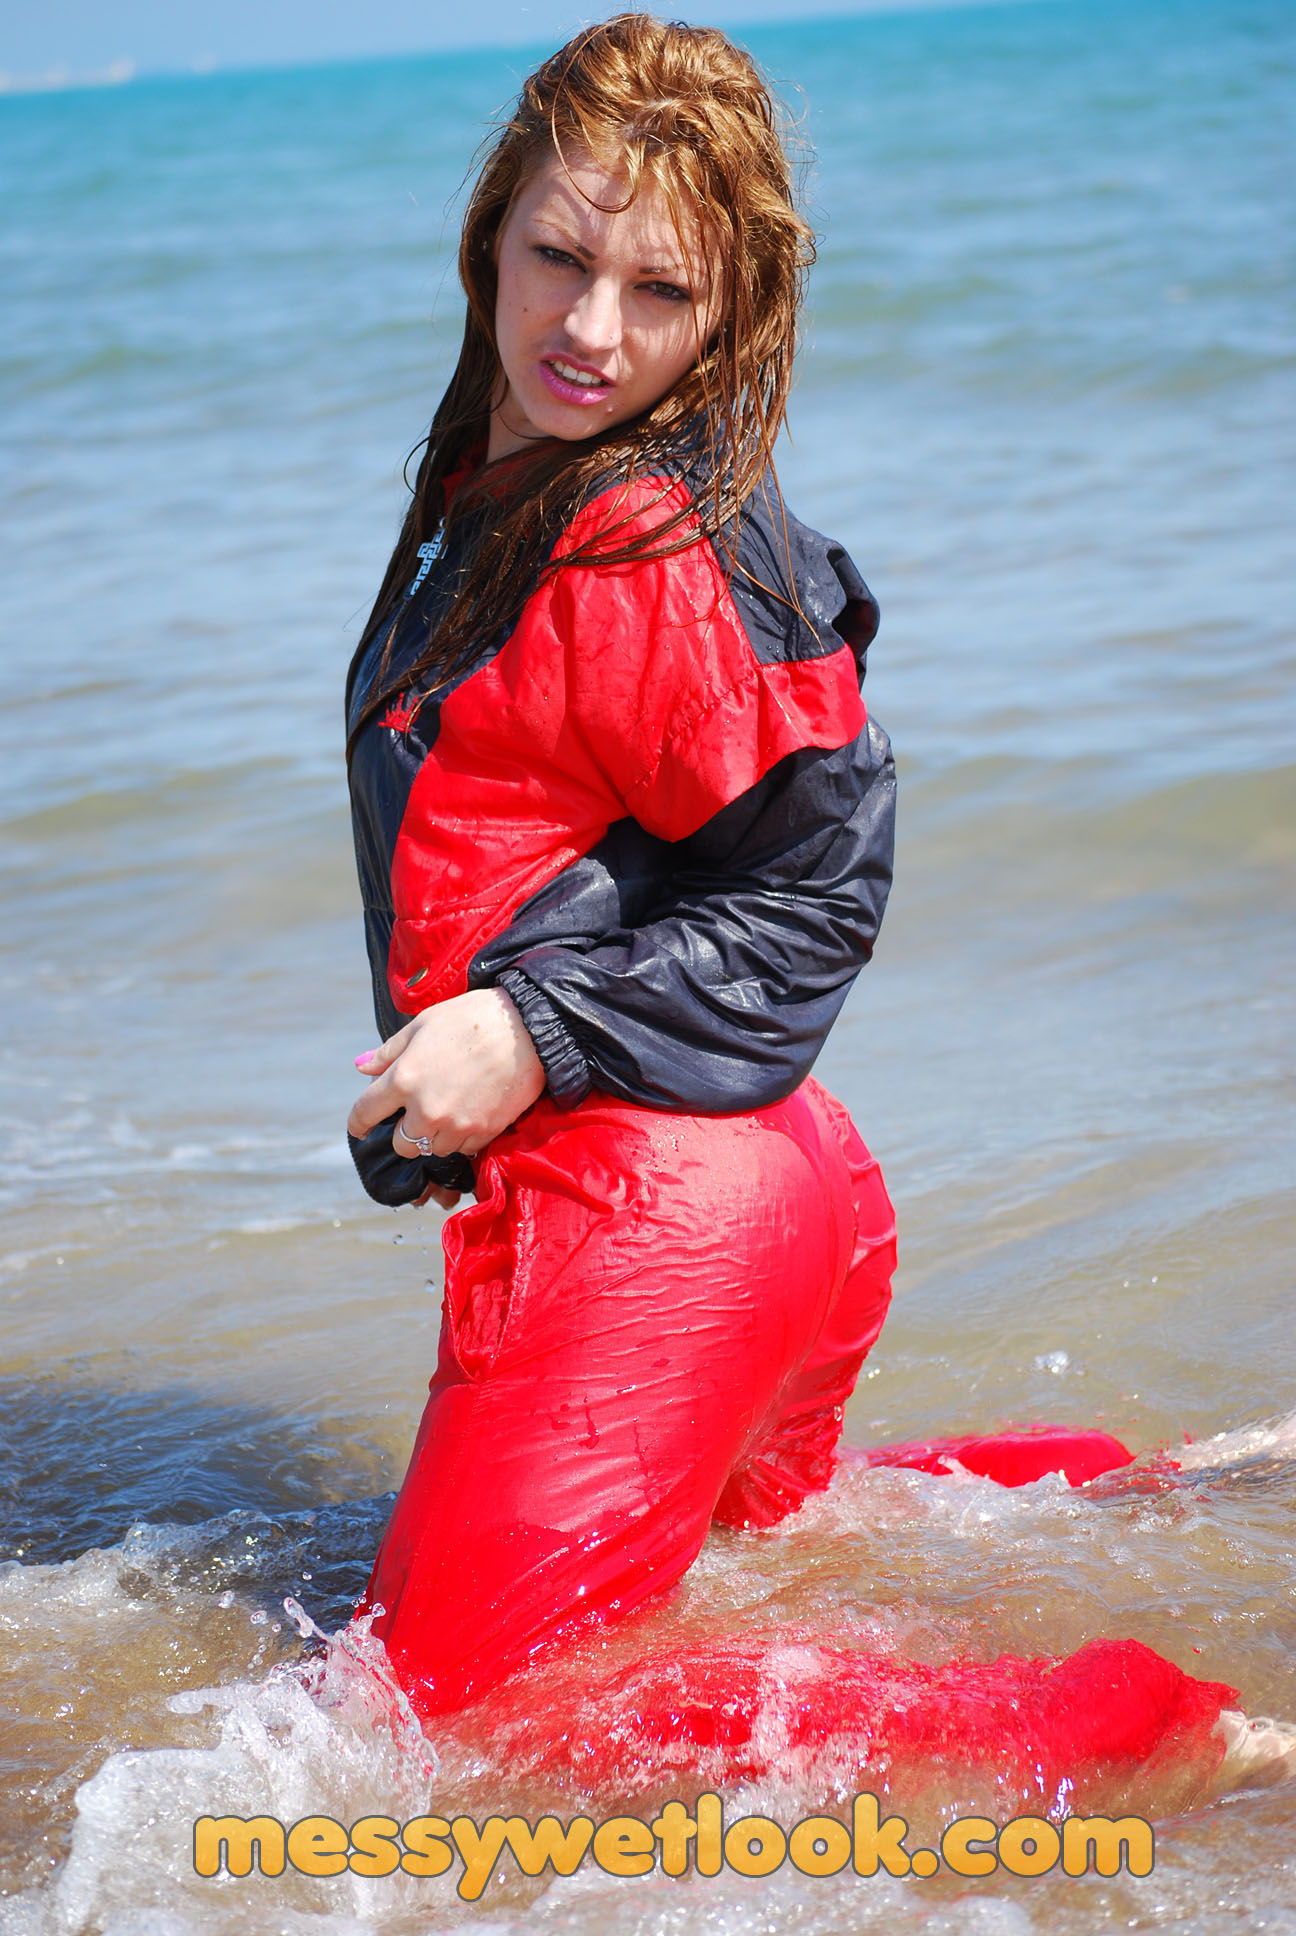 WETLOOK IN RED SHINY TRACKSUIT AT THE BEACH | MW-24